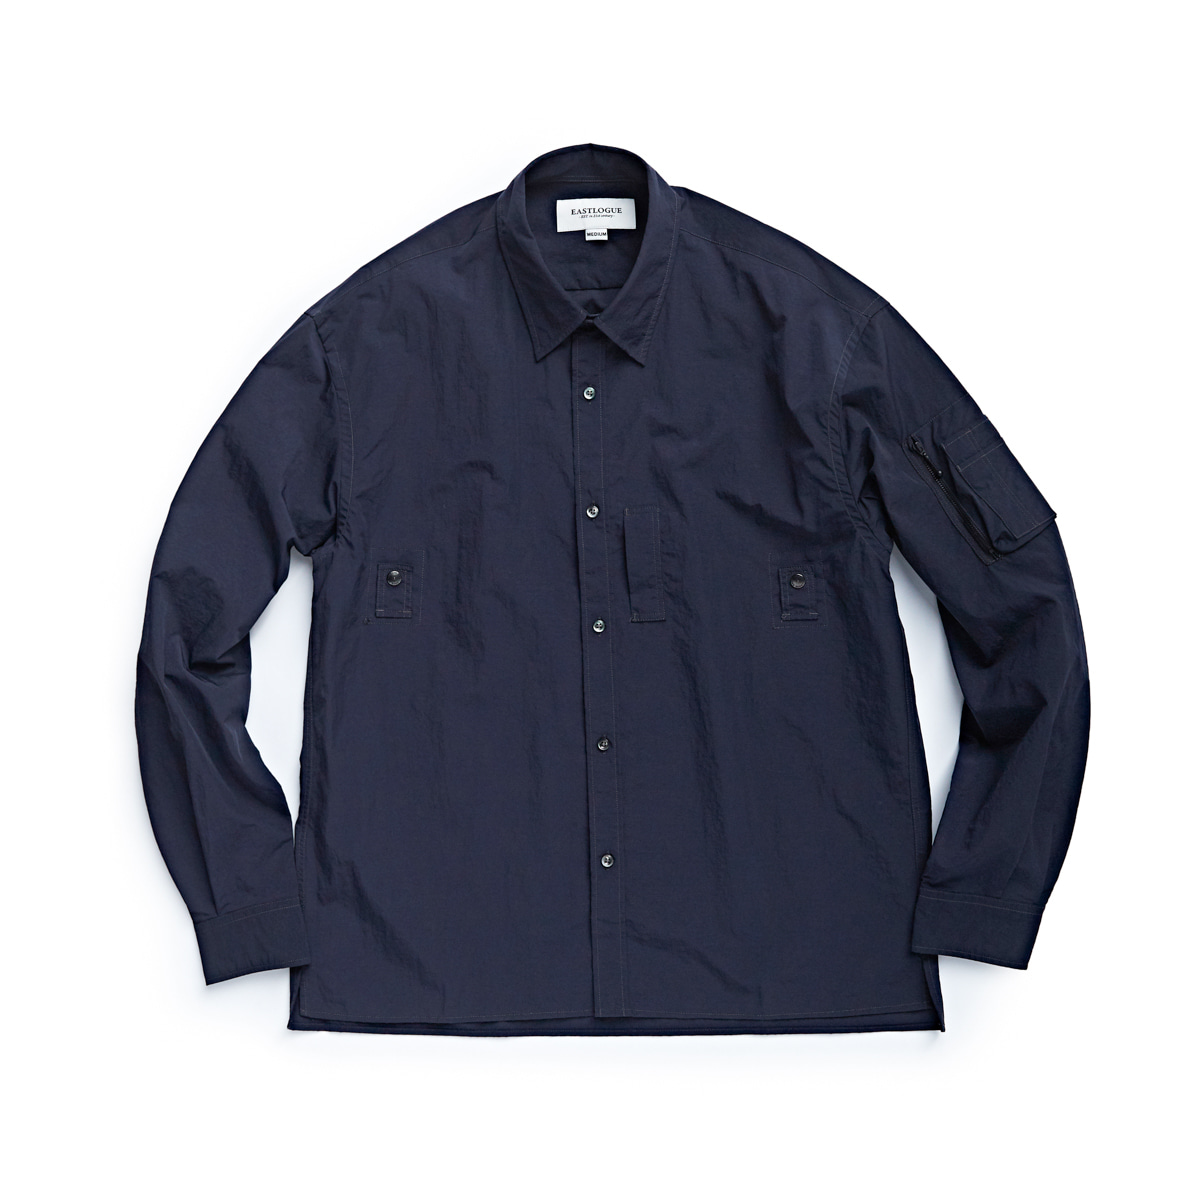 [EASTLOGUE] MA-1 SHIRT 'NAVY NYLON WASHER'